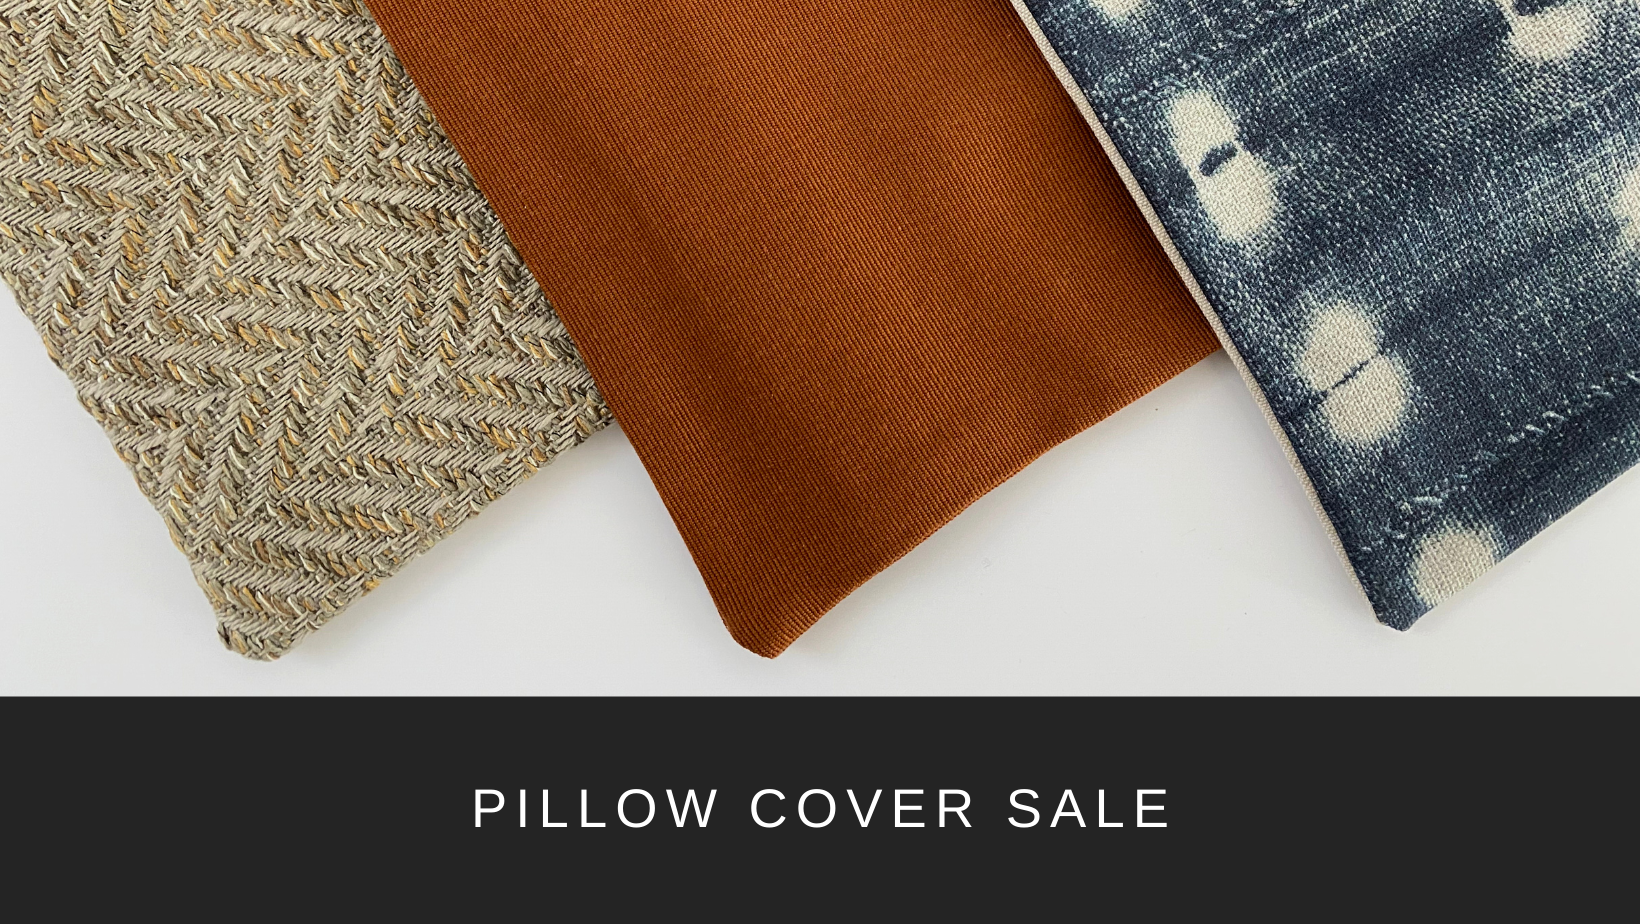 Pillow Cover Sale, Pillow Covers, Designer Pillow Covers, Fall pillow covers, Hackner Home, Sale pillows, On Sale, Summer Sale 2021